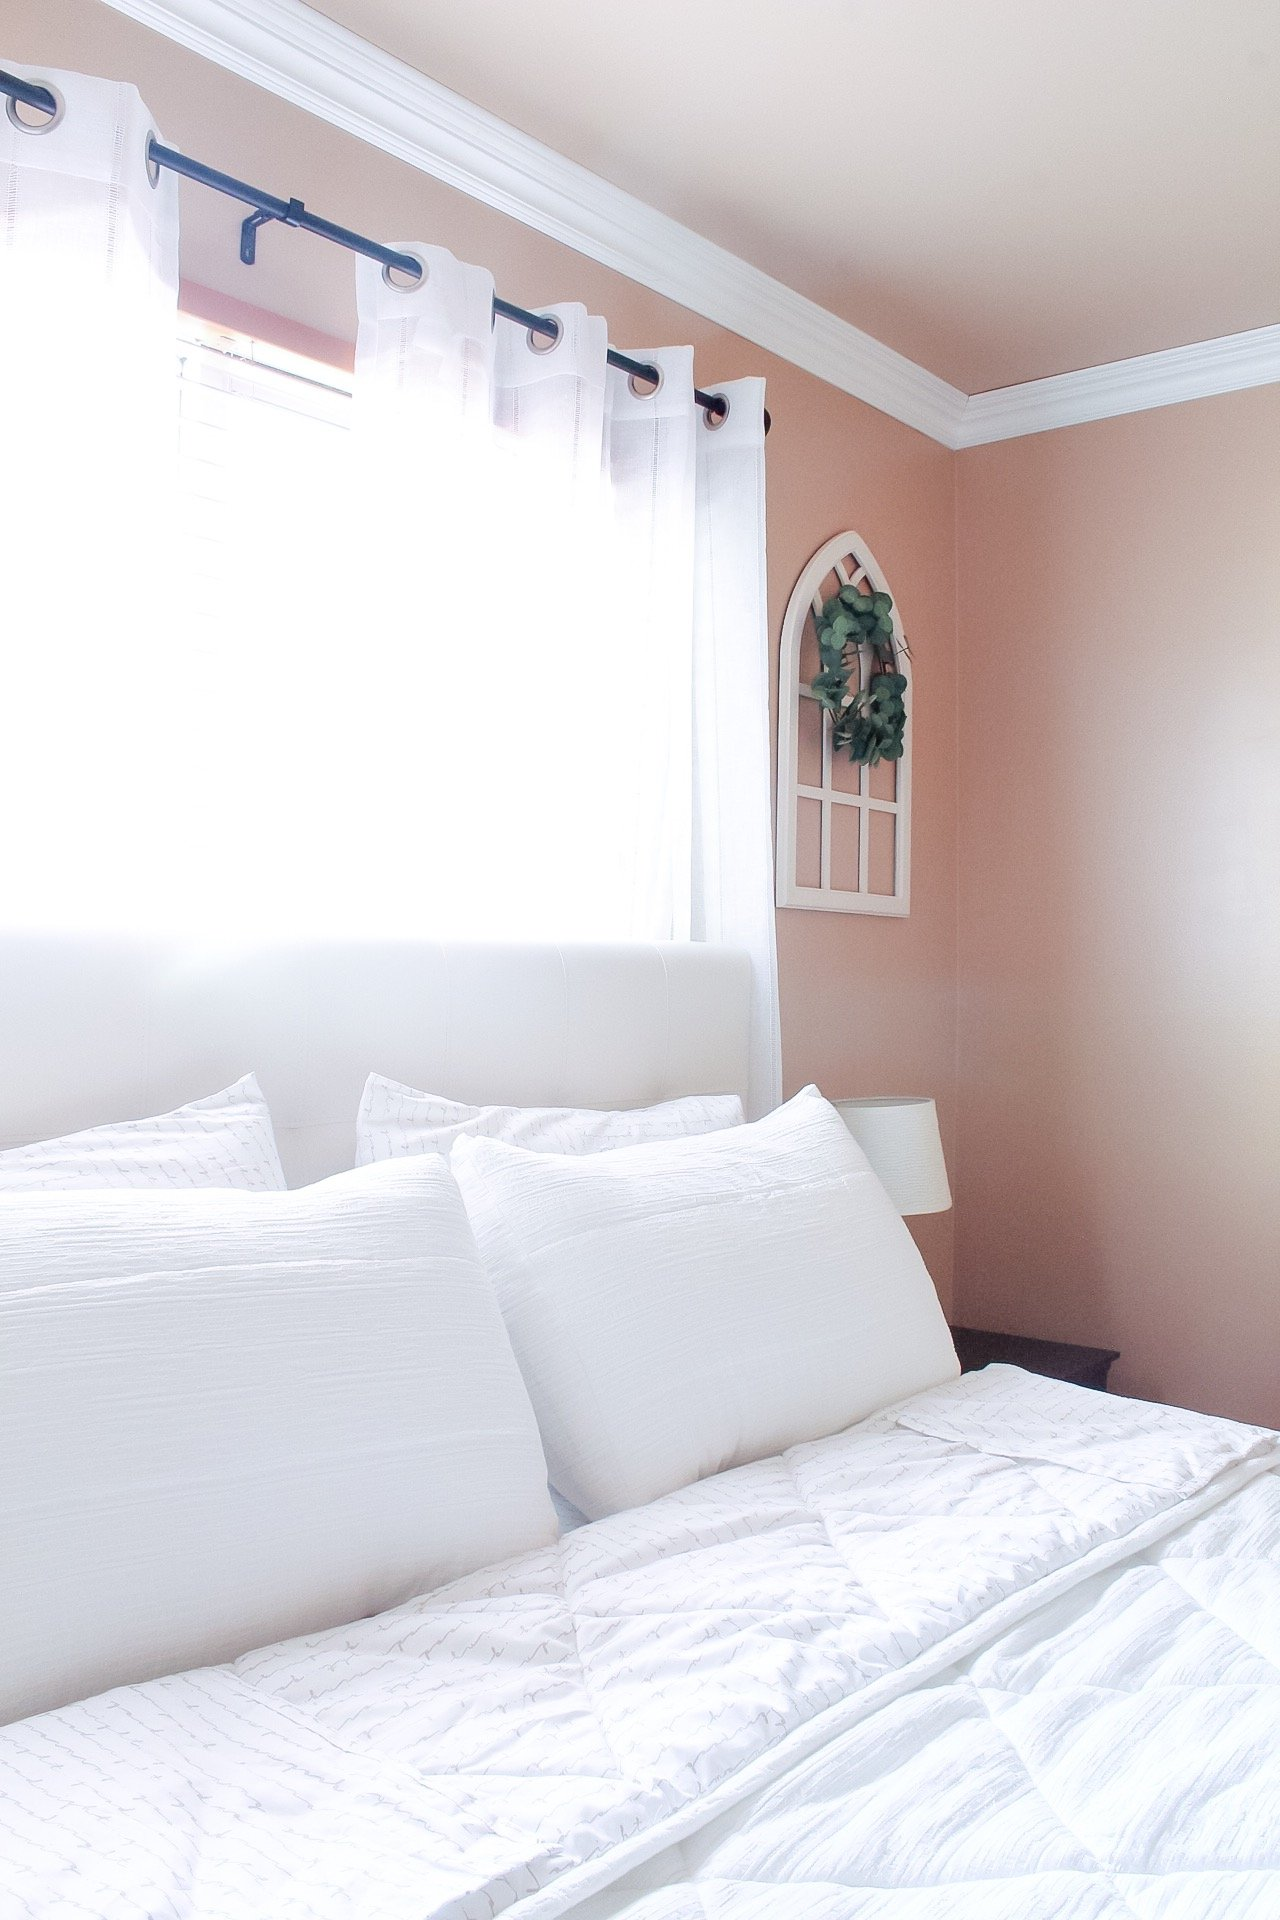 Everything You Need To Know About Zippered Bedding #slayathomeother #bedding #beddys - SLAYathomemother.com